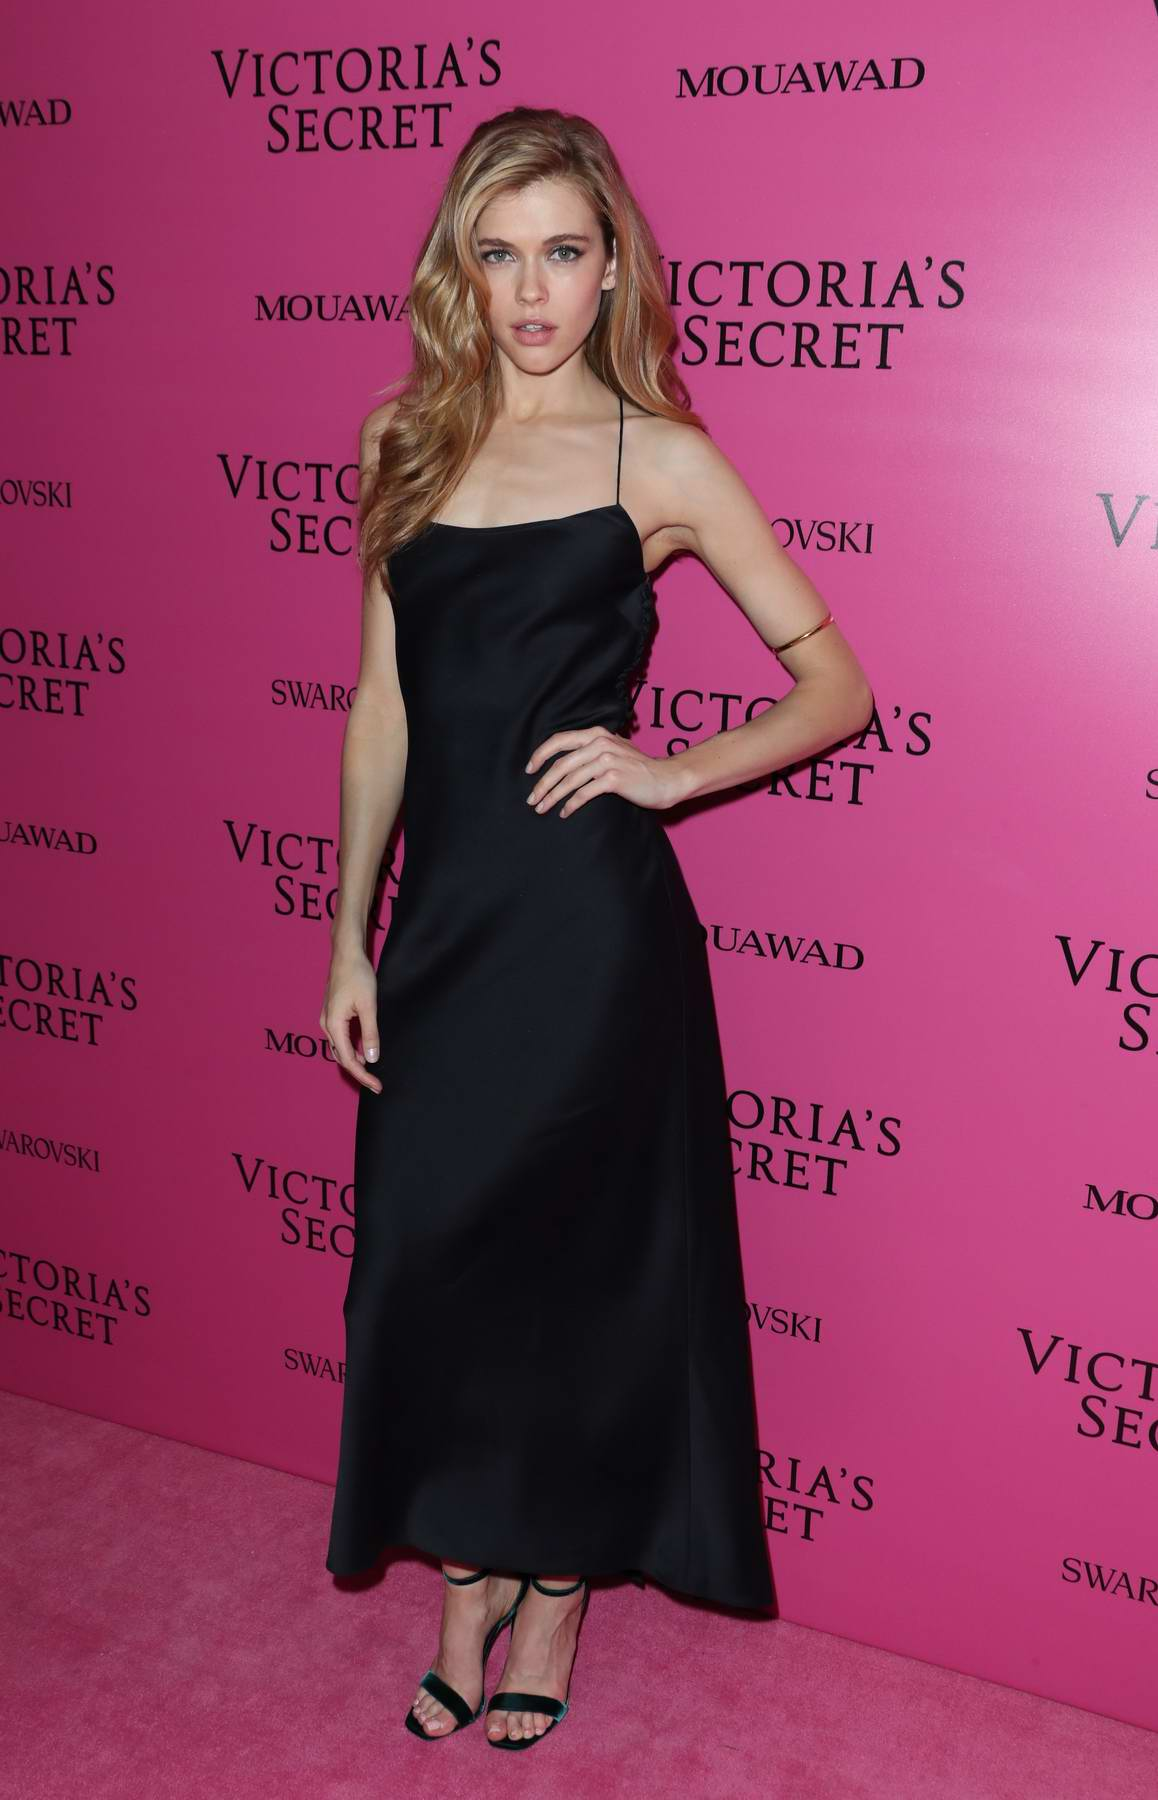 Victoria Lee at the Victoria's Secret fashion show, pink carpet and after party at Expo Center in Shanghai, China